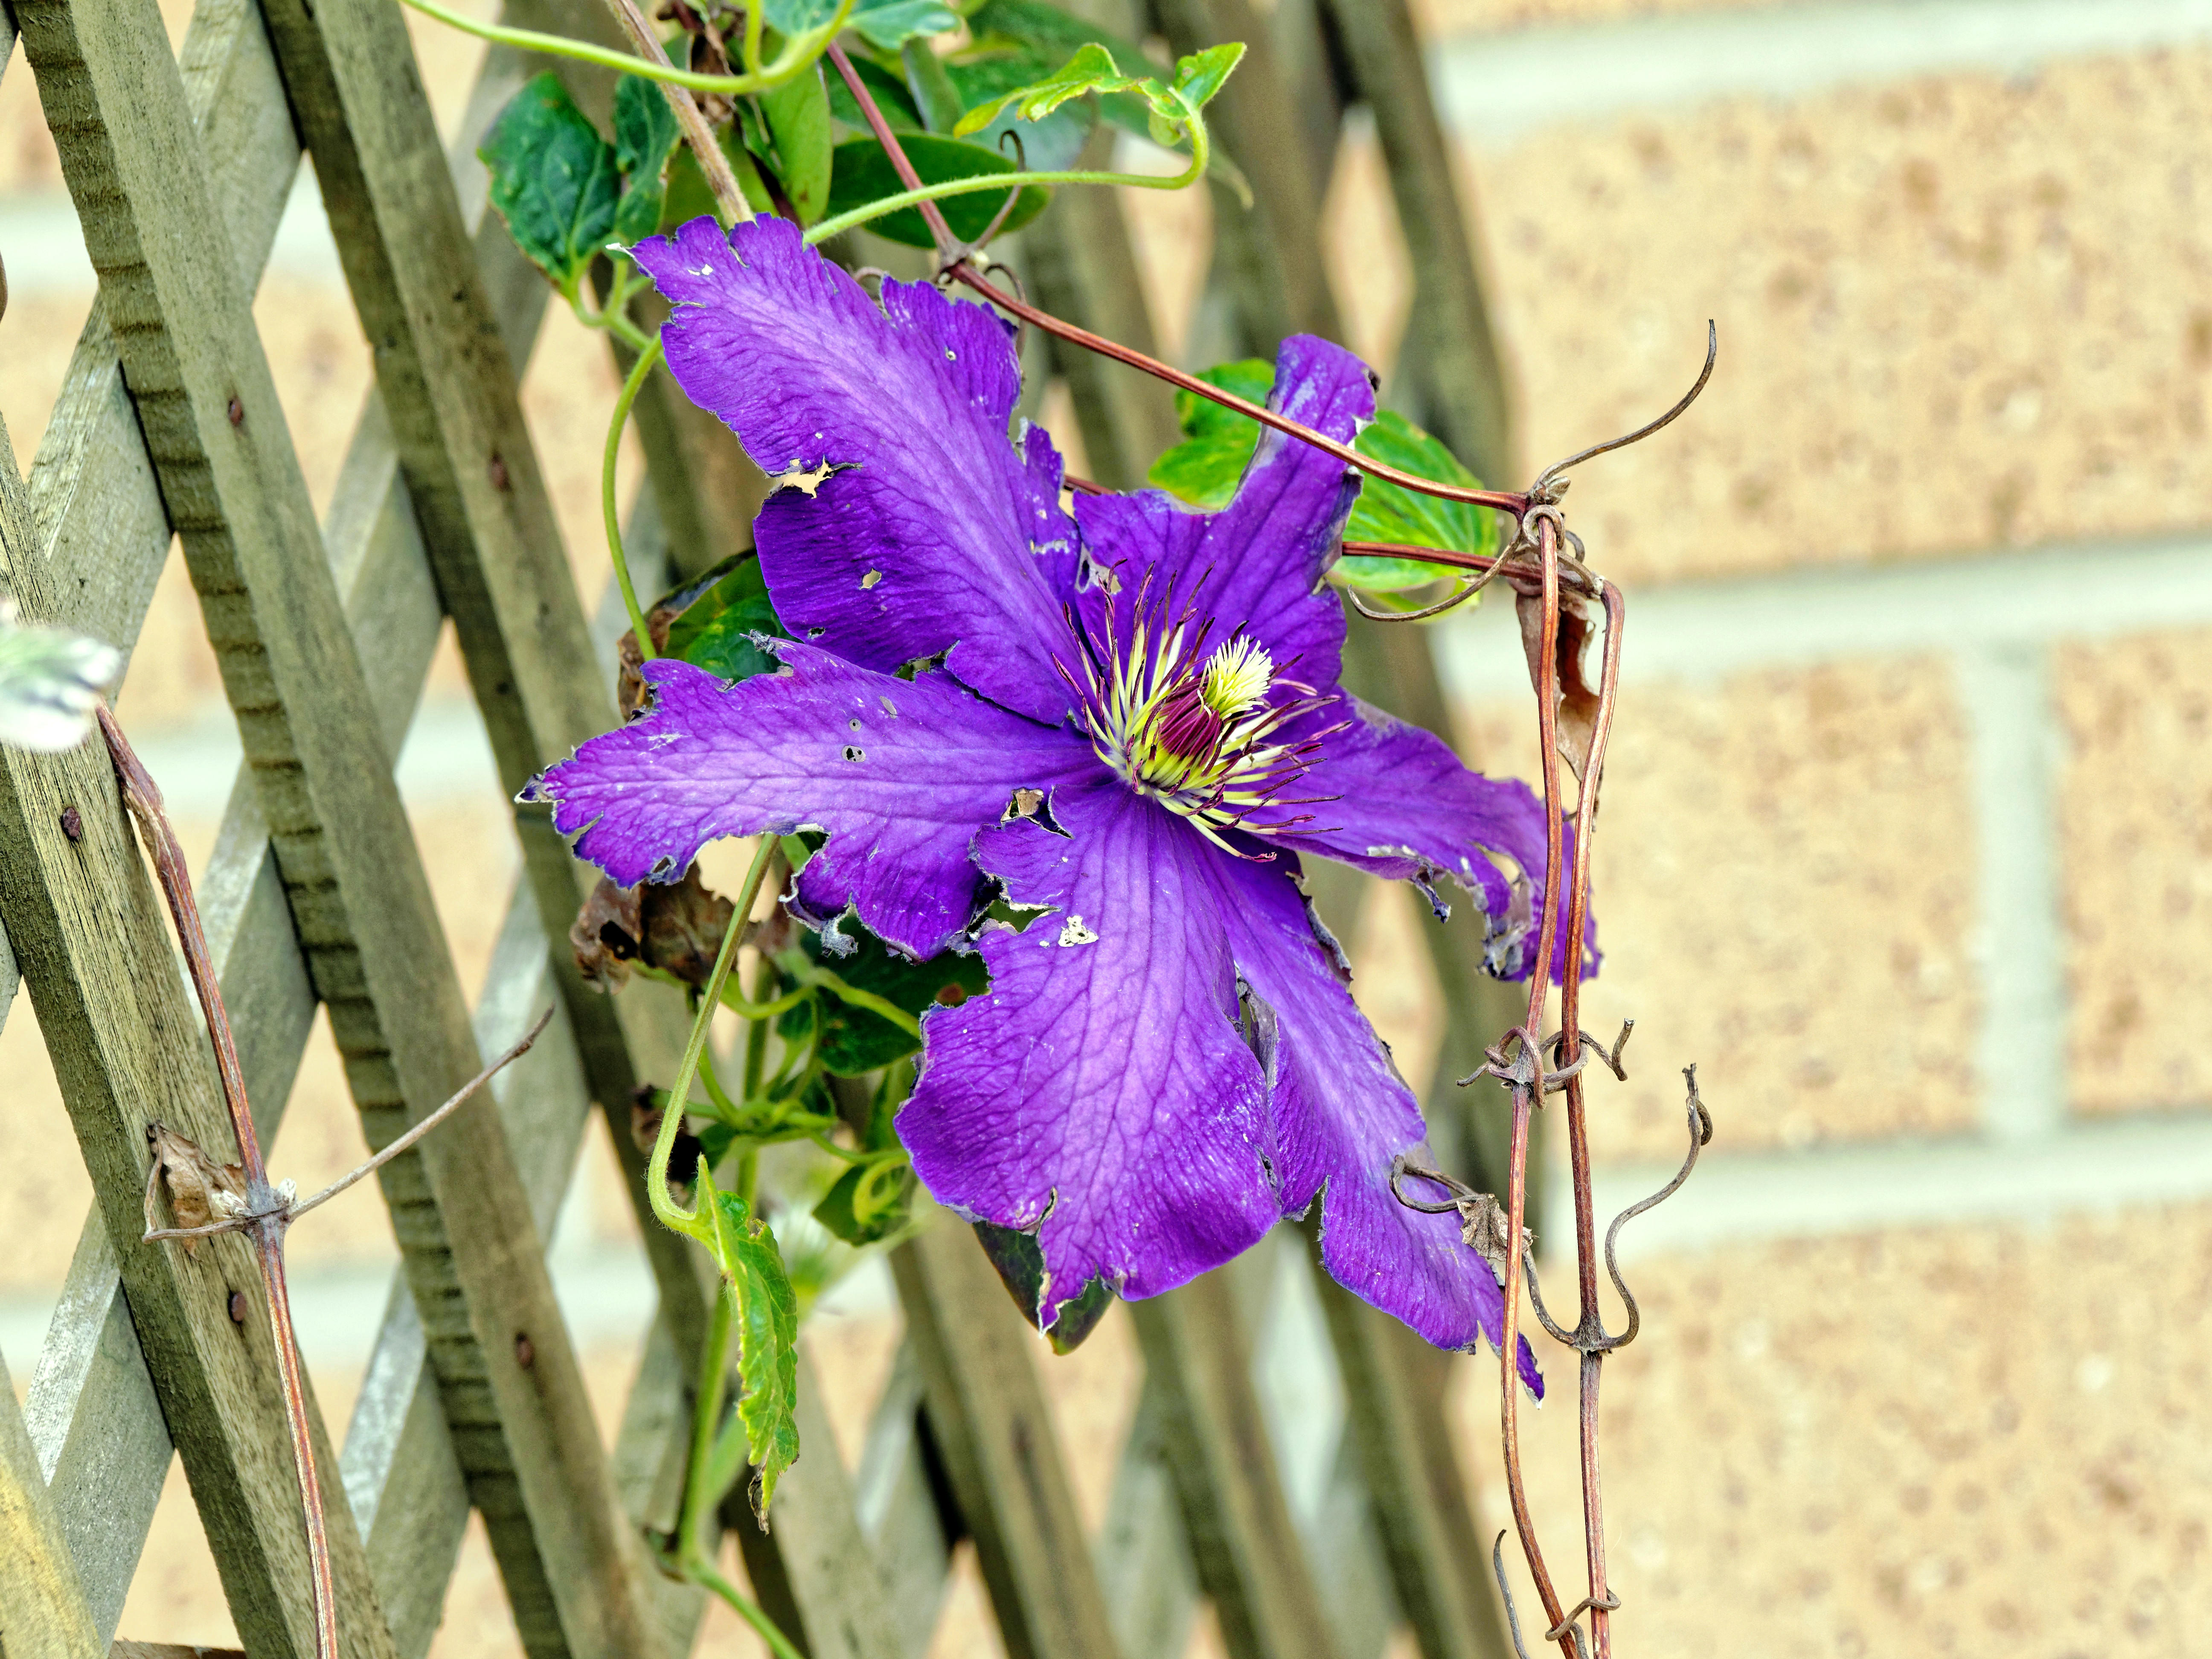 This should be Clematis-1.jpeg.  Is it missing?